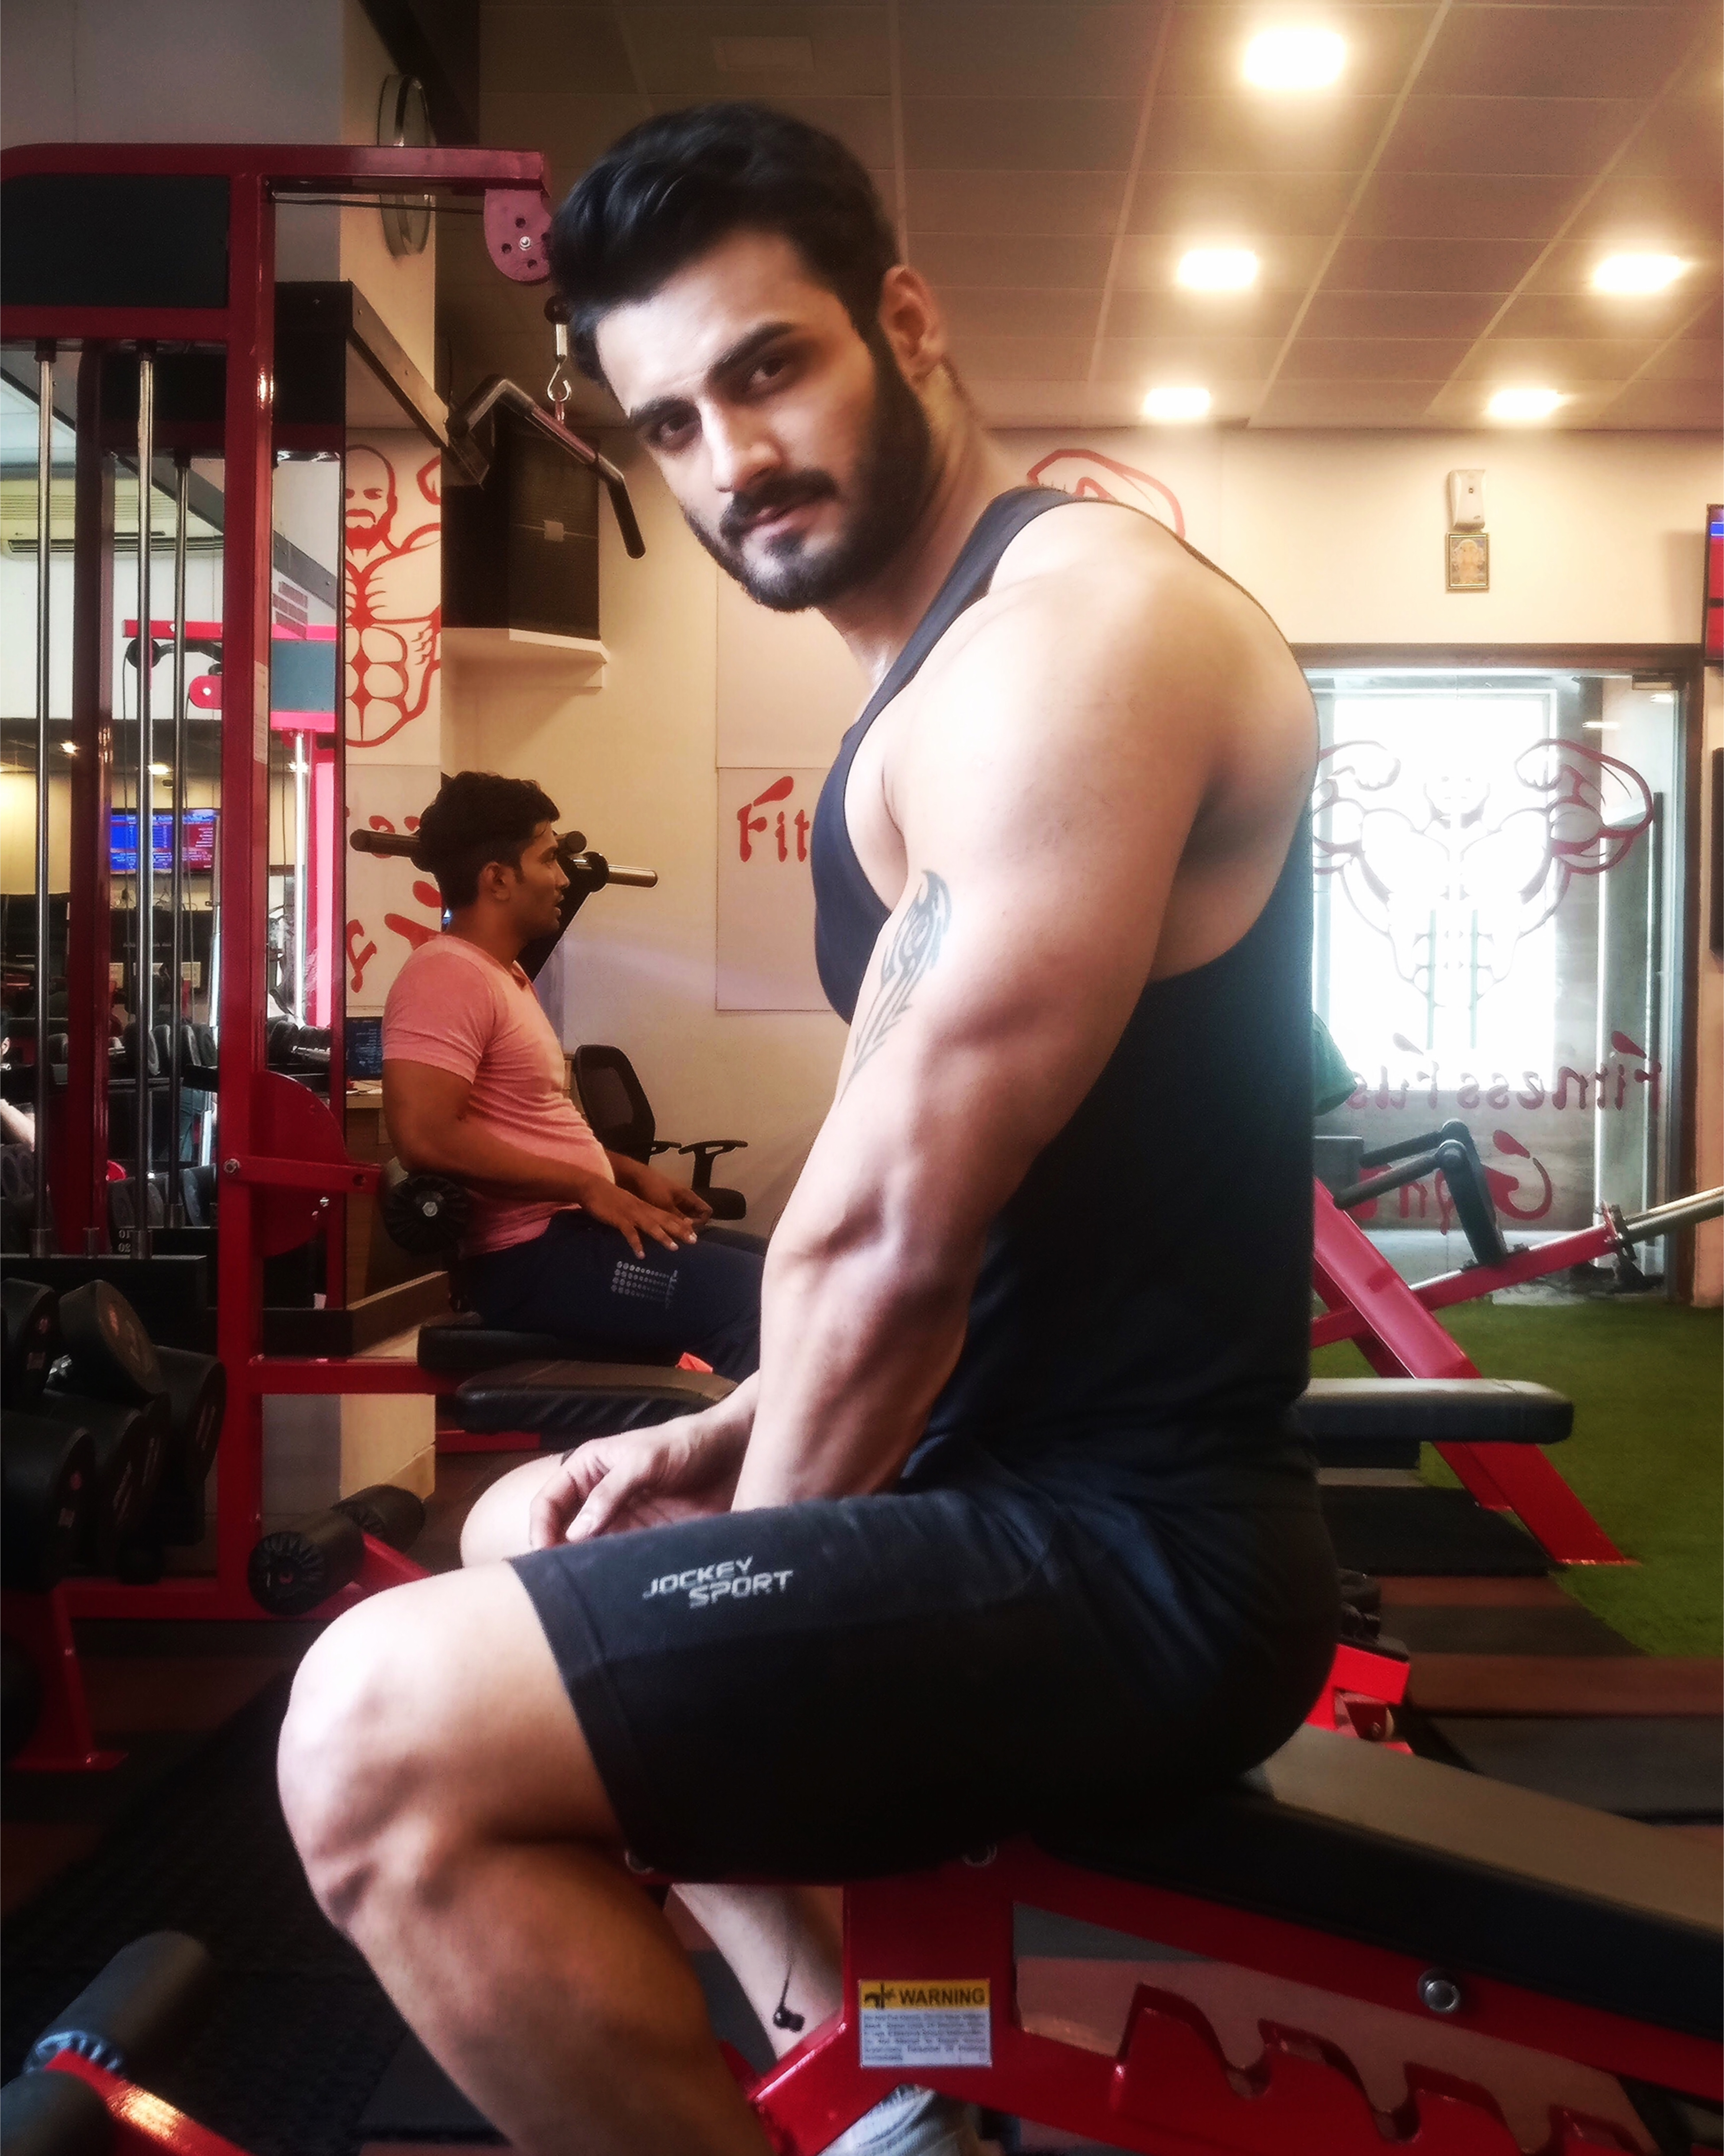 E N E R G Y  Don't tell anyone what you're doing until it's done. Outside energy can throw off goals.  #fitnessmotivation #aestheticnation #calisthenics #fitness #menwithfitness #arms #shredded #muscles #bigarms #iaman01 #amansharma (A-man)